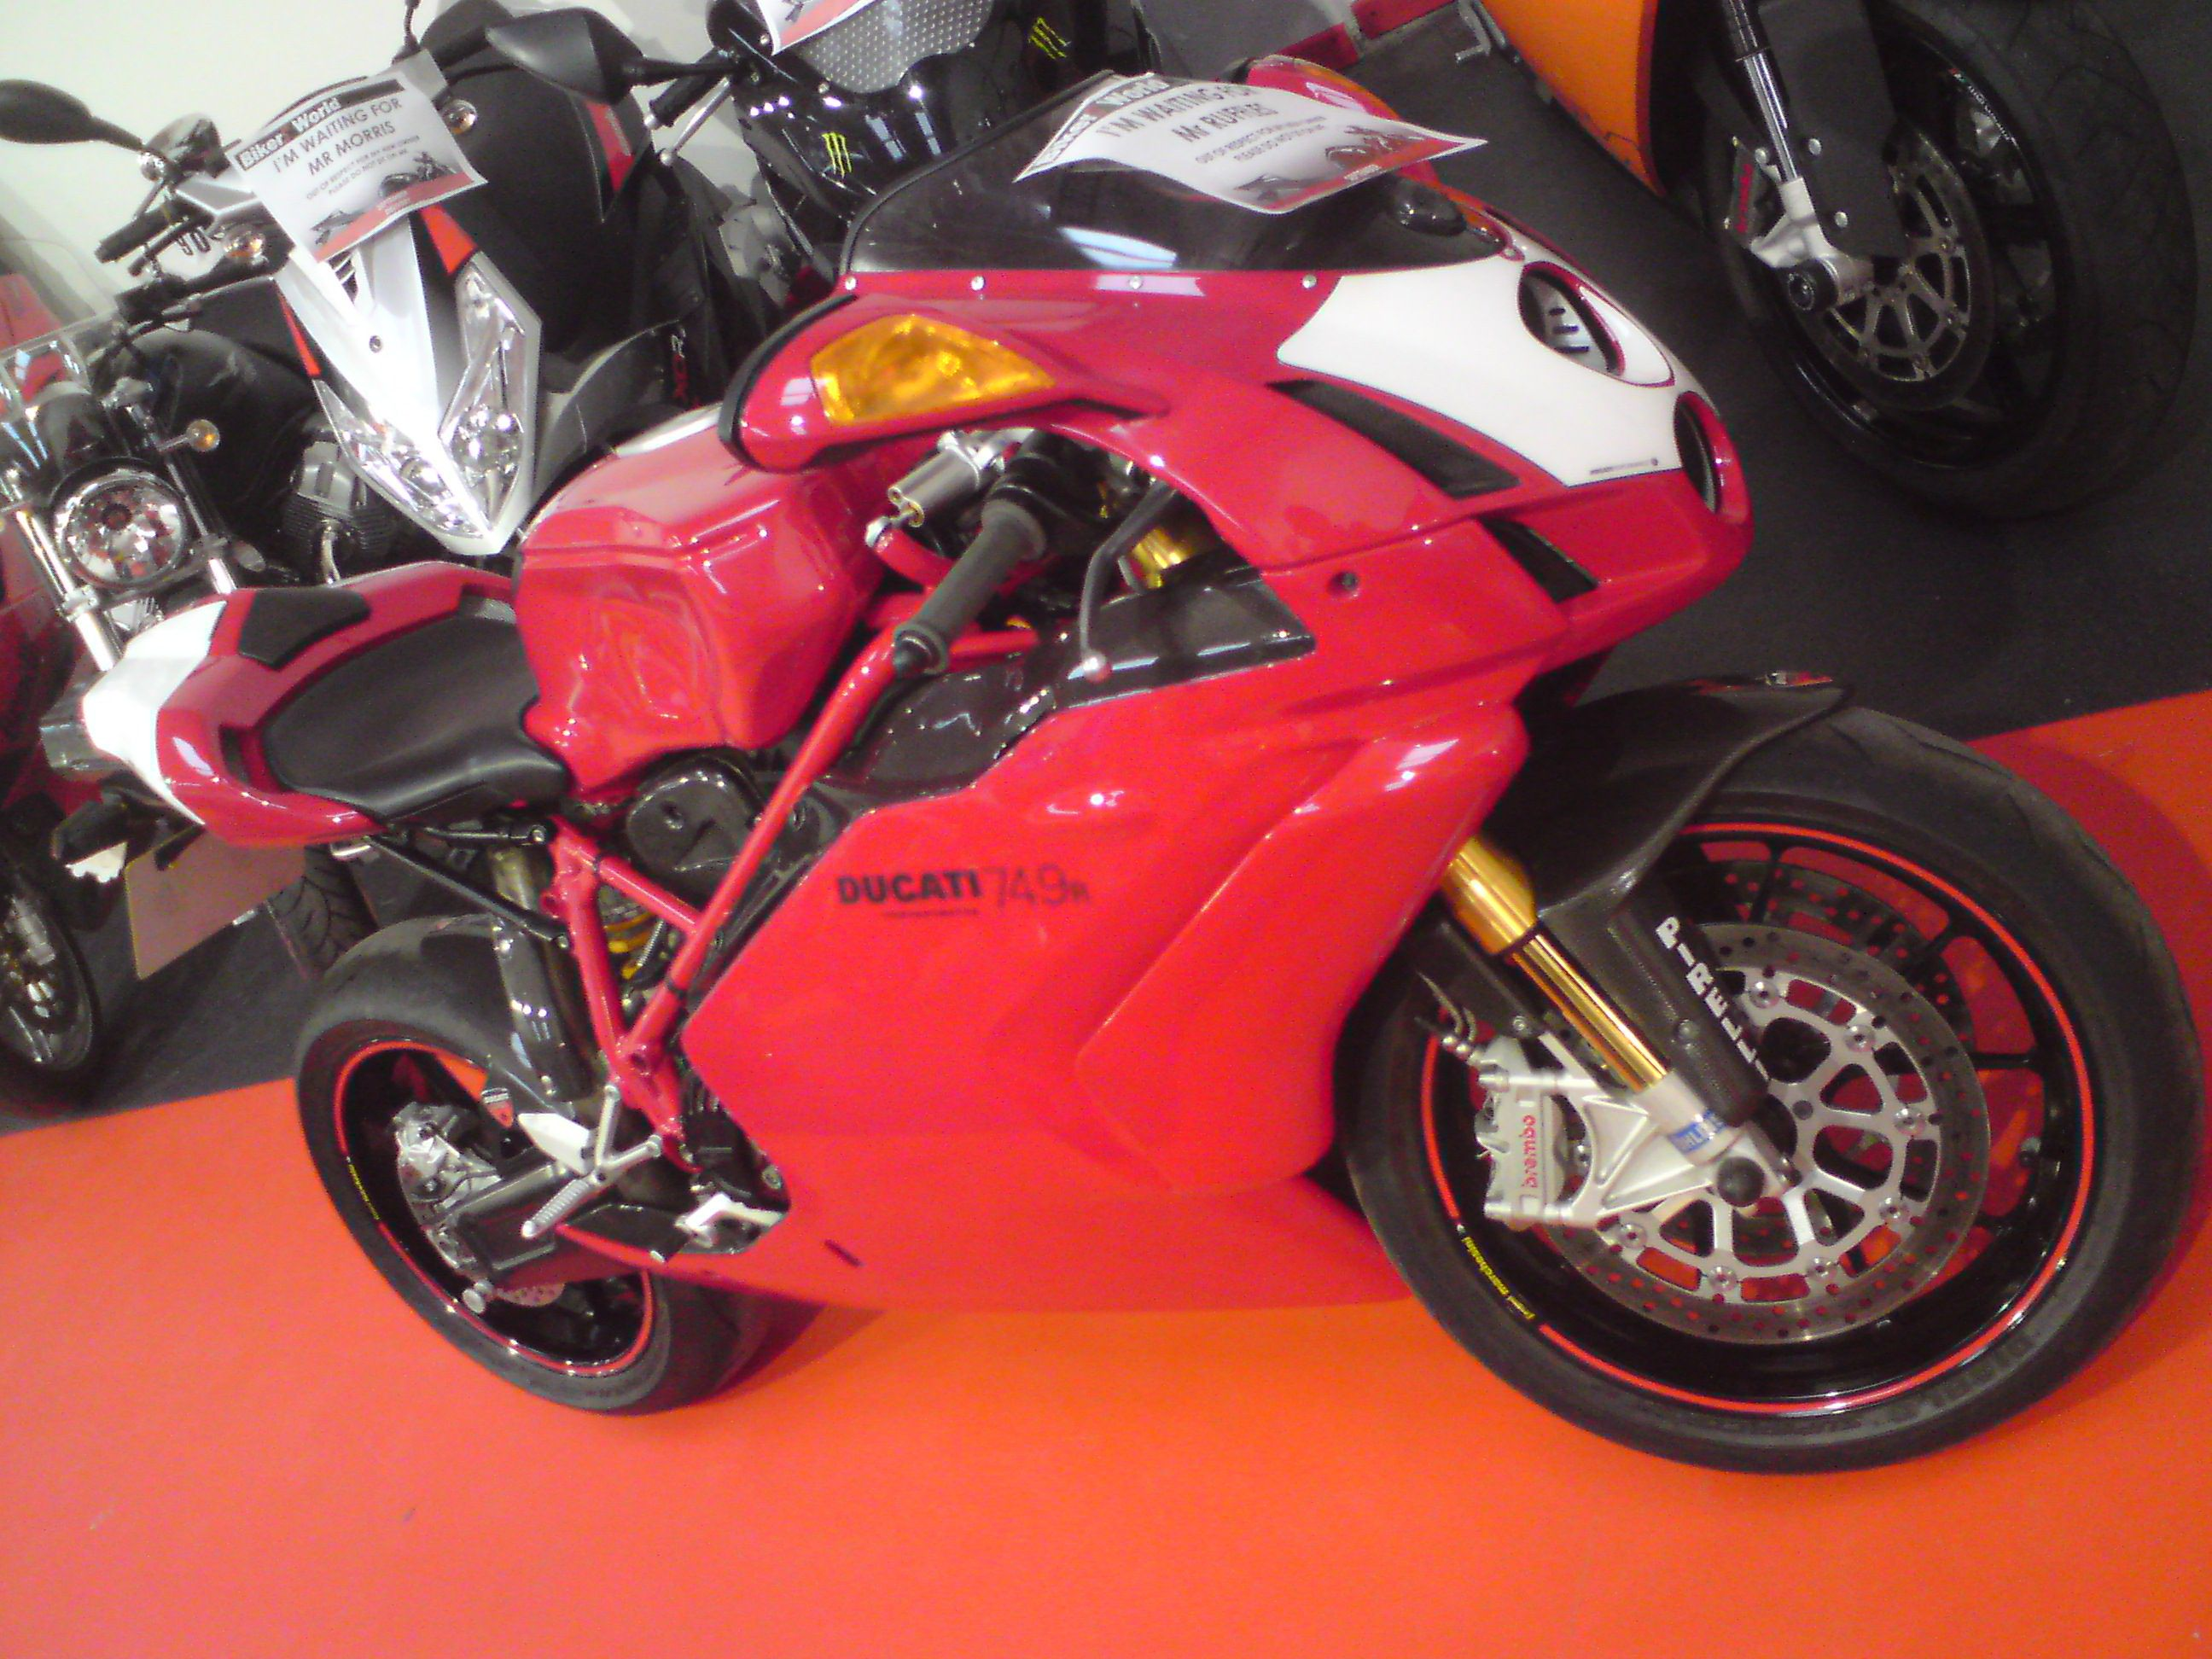 my old ducati 749r 2004 model full carbon not to be dropped  [ 2592 x 1944 Pixel ]